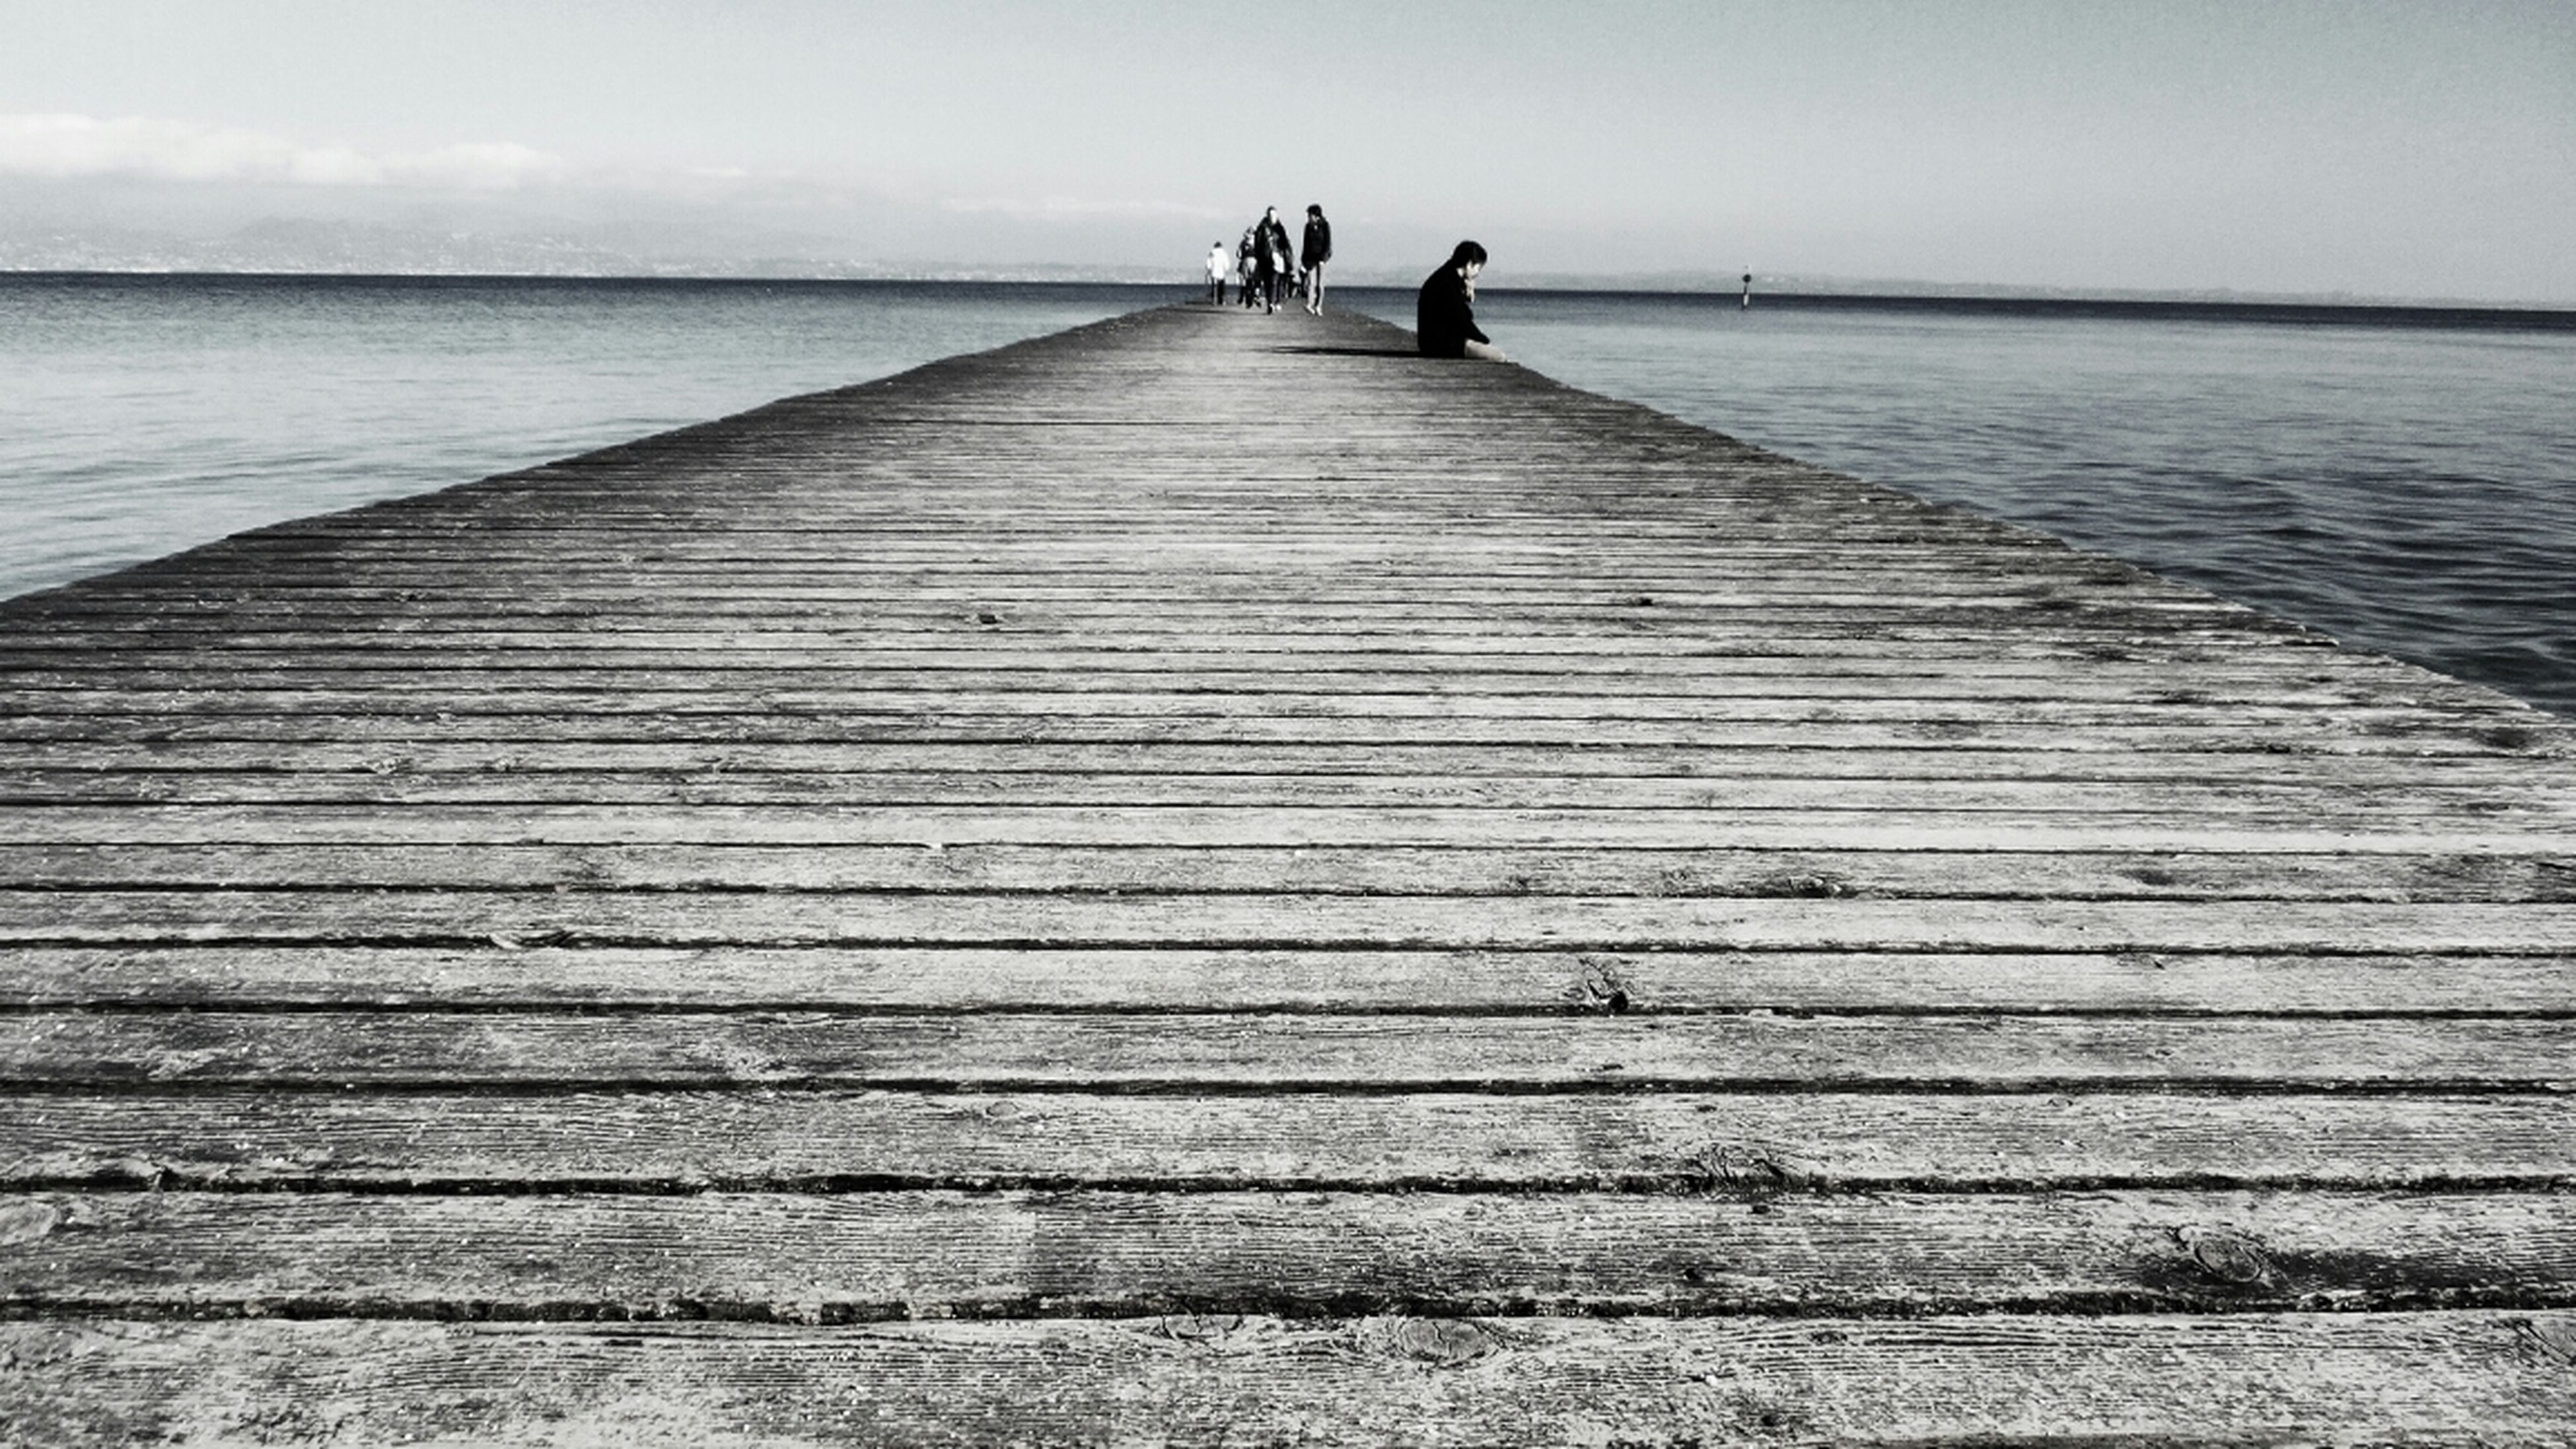 water, sea, pier, lifestyles, leisure activity, men, tranquil scene, tranquility, horizon over water, wood - material, jetty, rear view, scenics, person, nature, boardwalk, beauty in nature